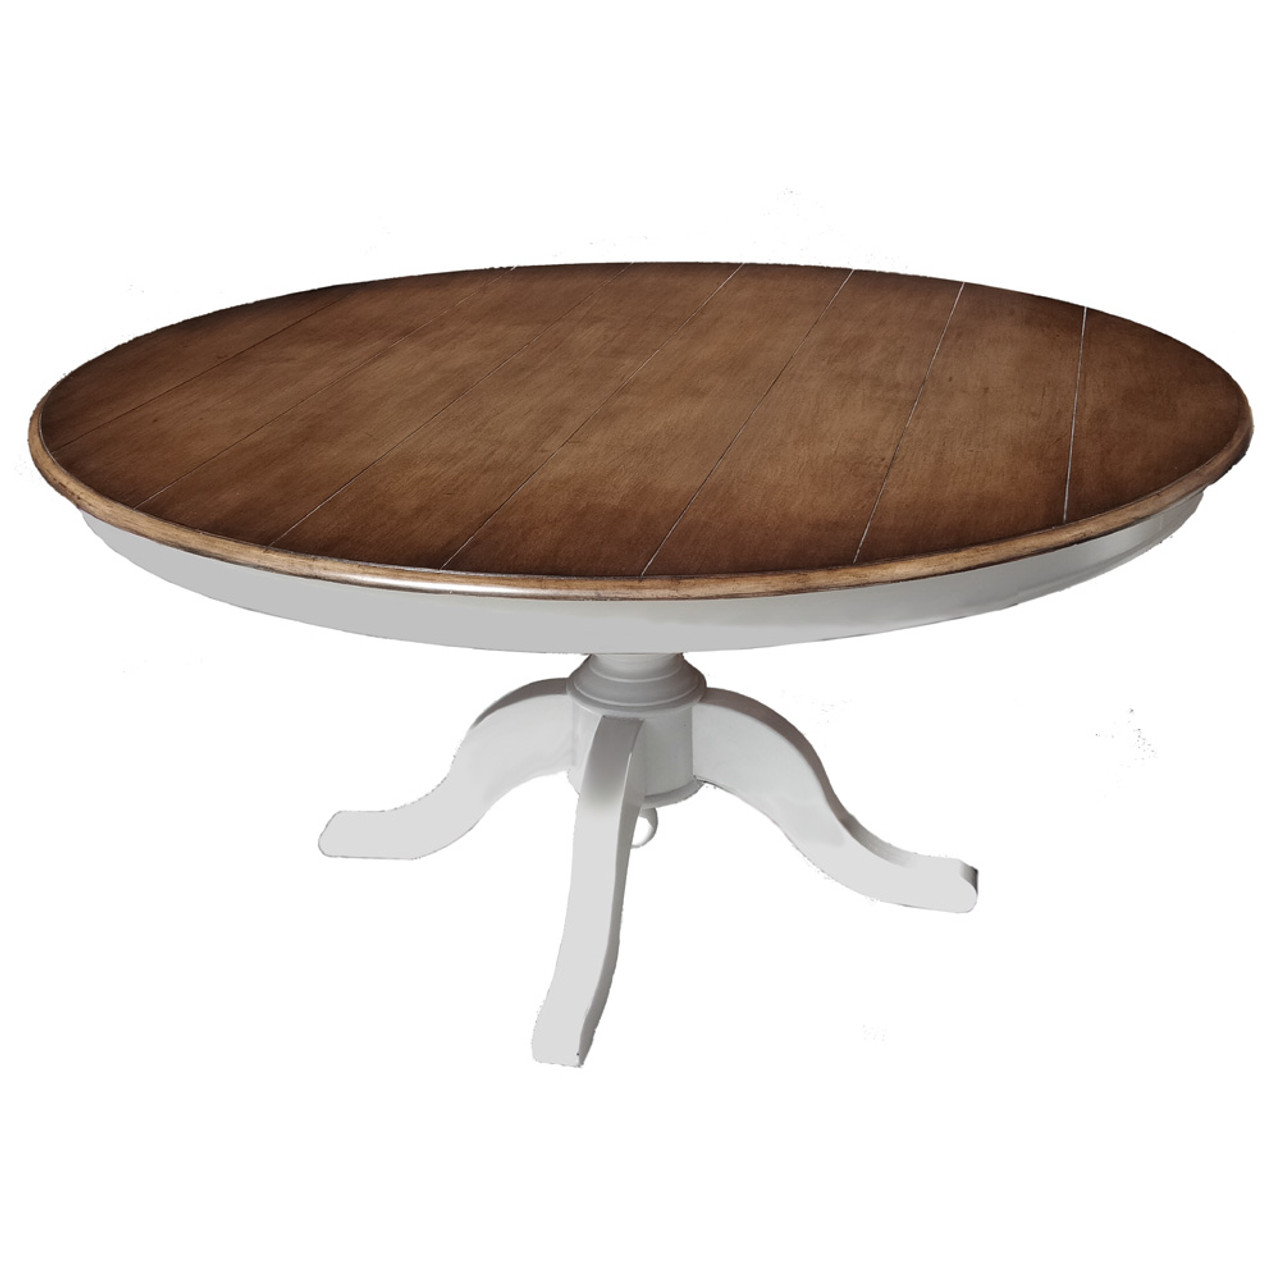 Farmhouse Round Dining Table 150cm Size 76h X 152w X 152d Cm Furniture Dining Dining Table